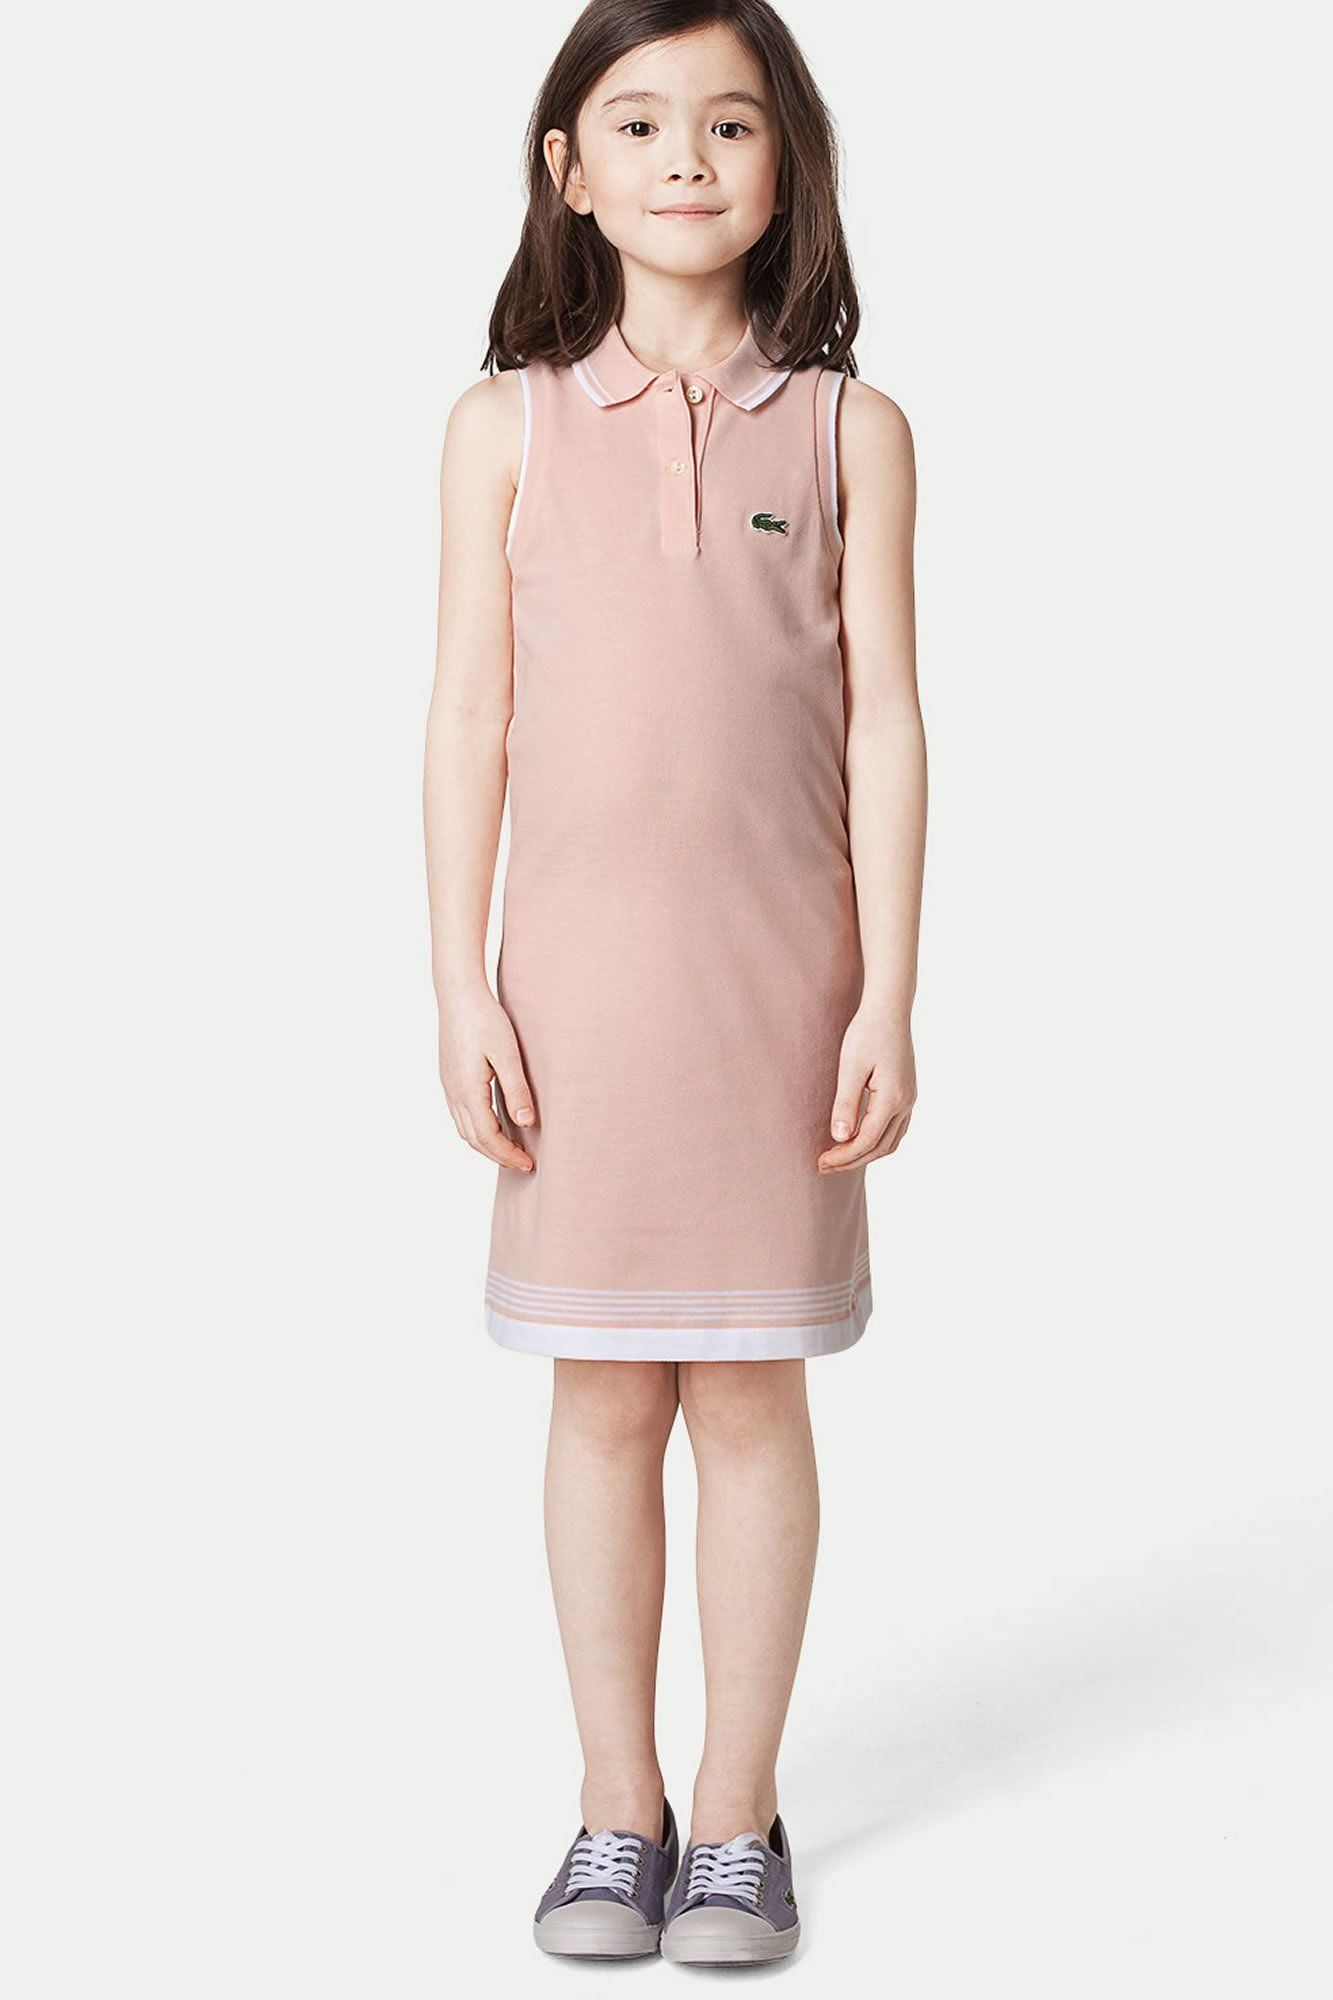 7b26a9ddb350 Lacoste Girl s Sleeveless Pique Polo Dress With Hemline Stripe On sale for  50% off today! Sizes may vary.